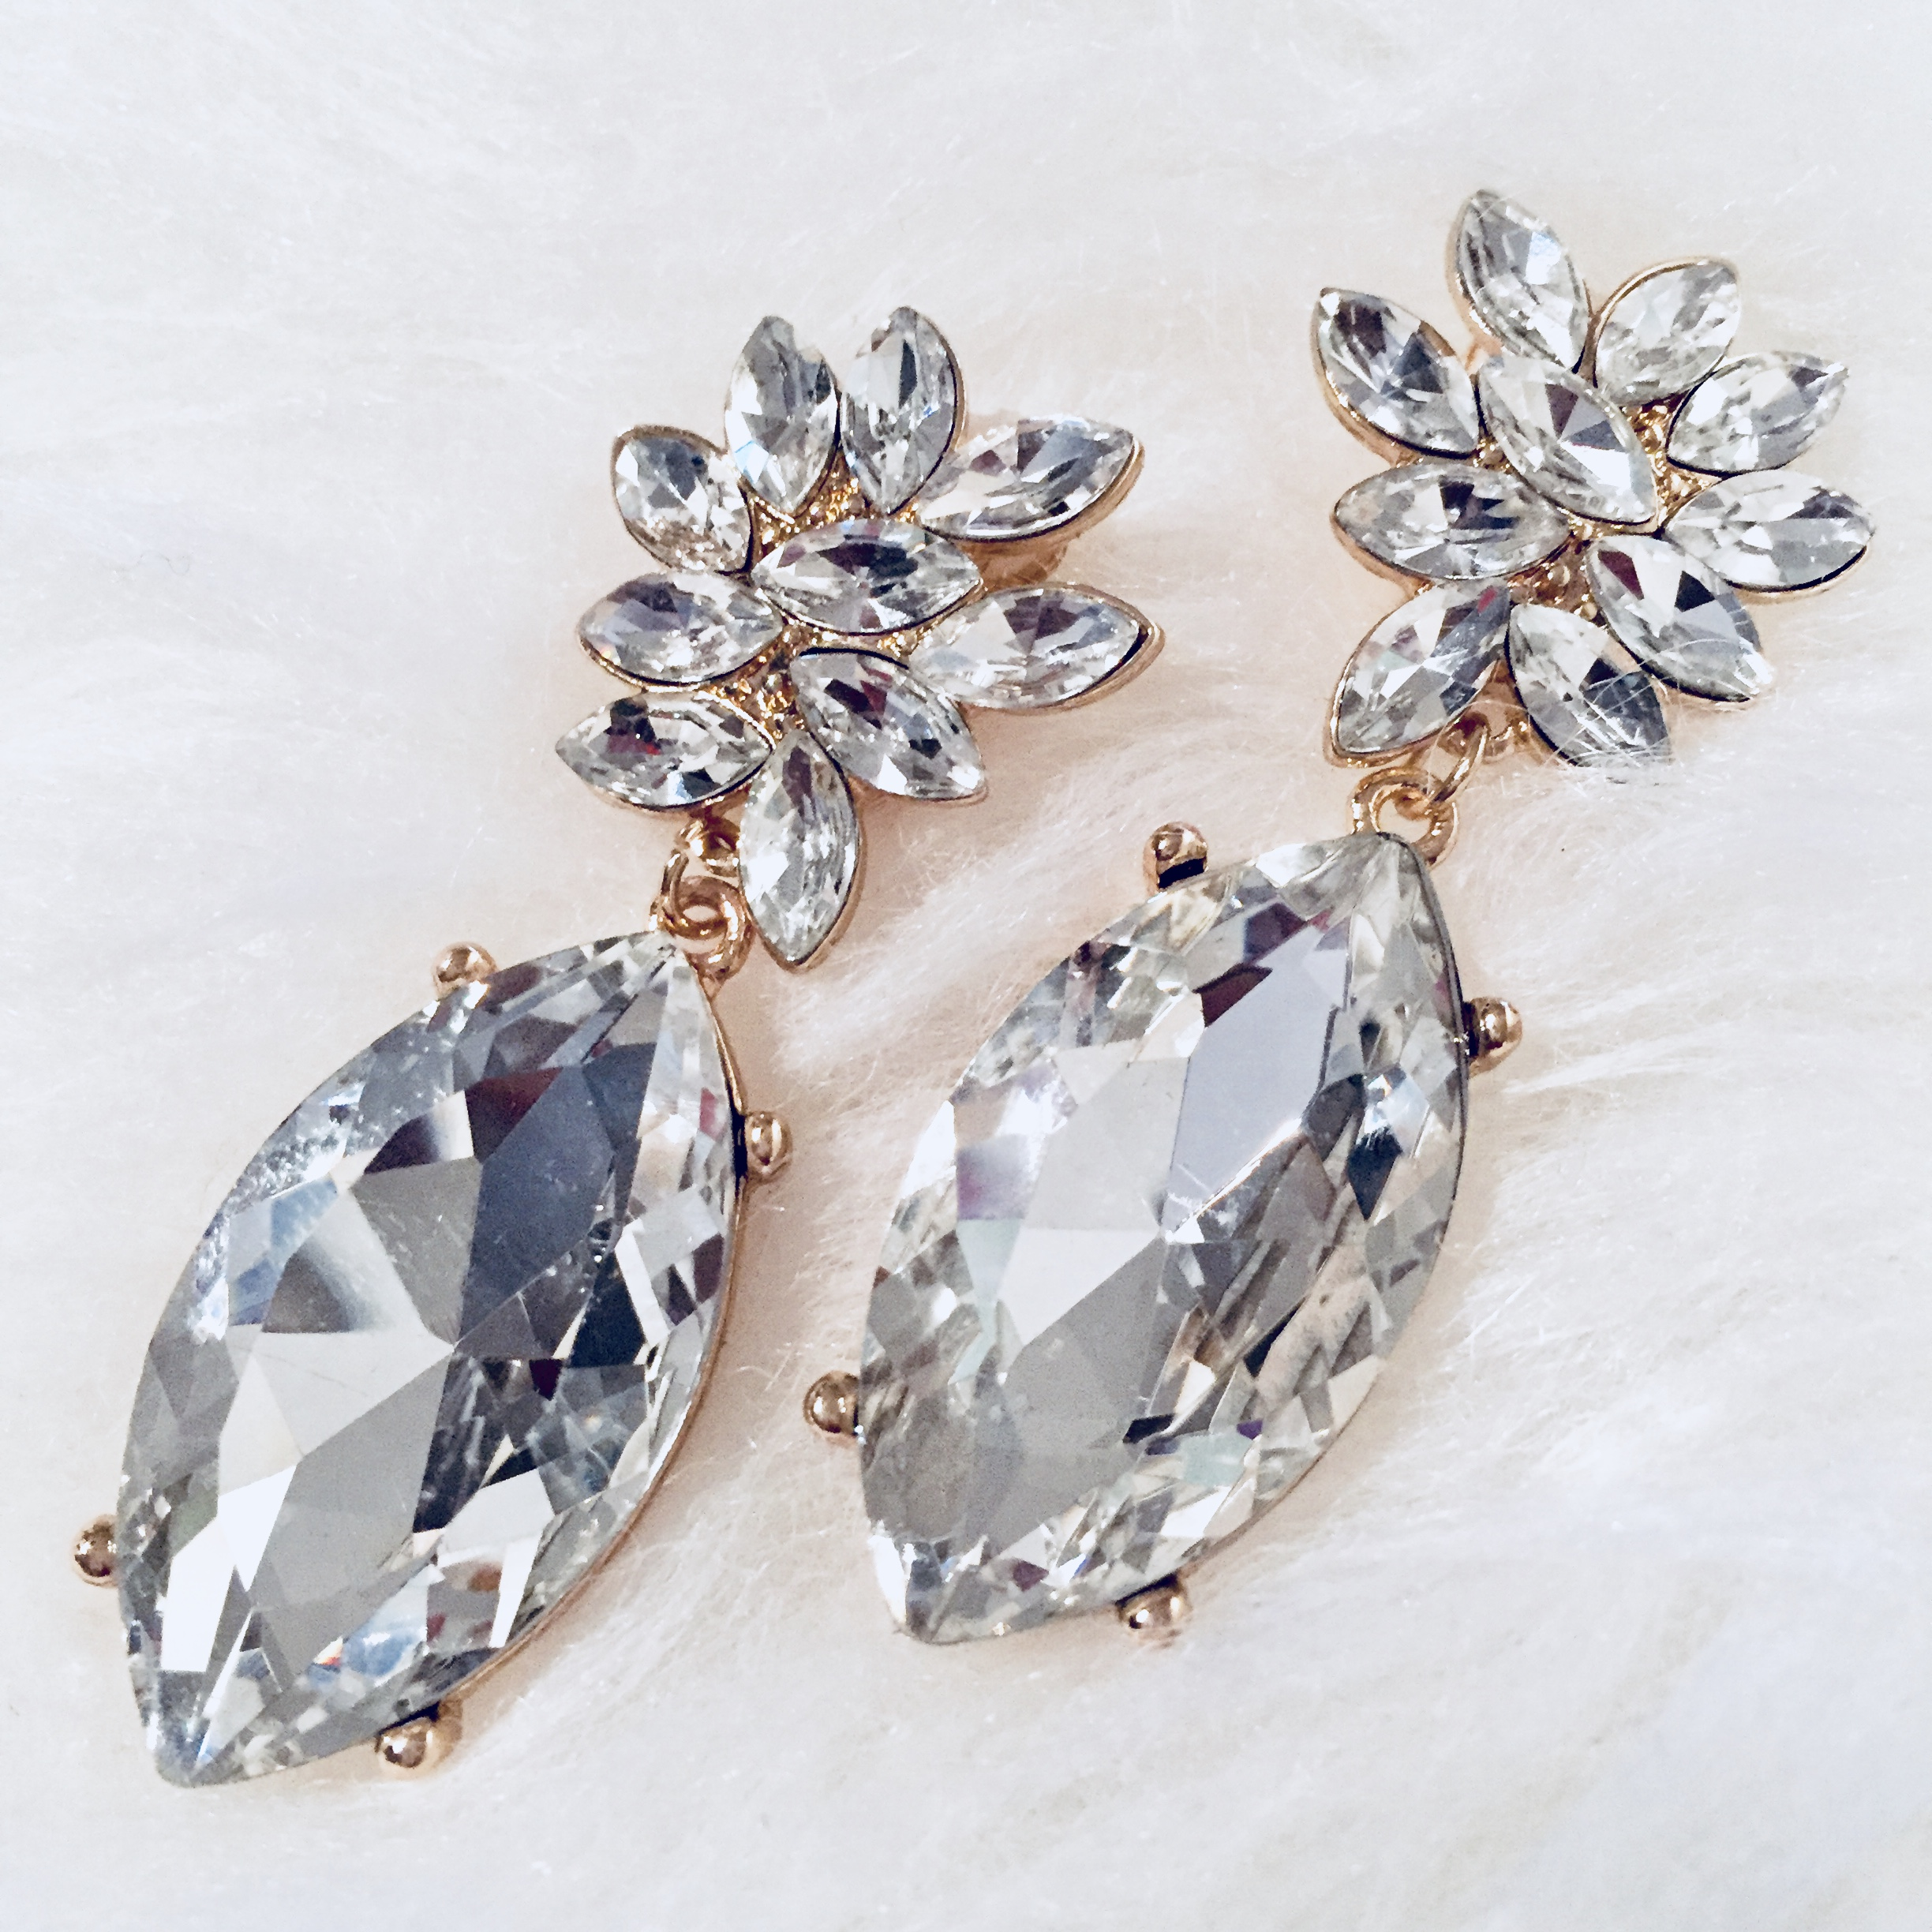 diamond helen tribute harry petal cluster baguette earrings false mixed crop kotlar to product upscale subsampling cut shop scale